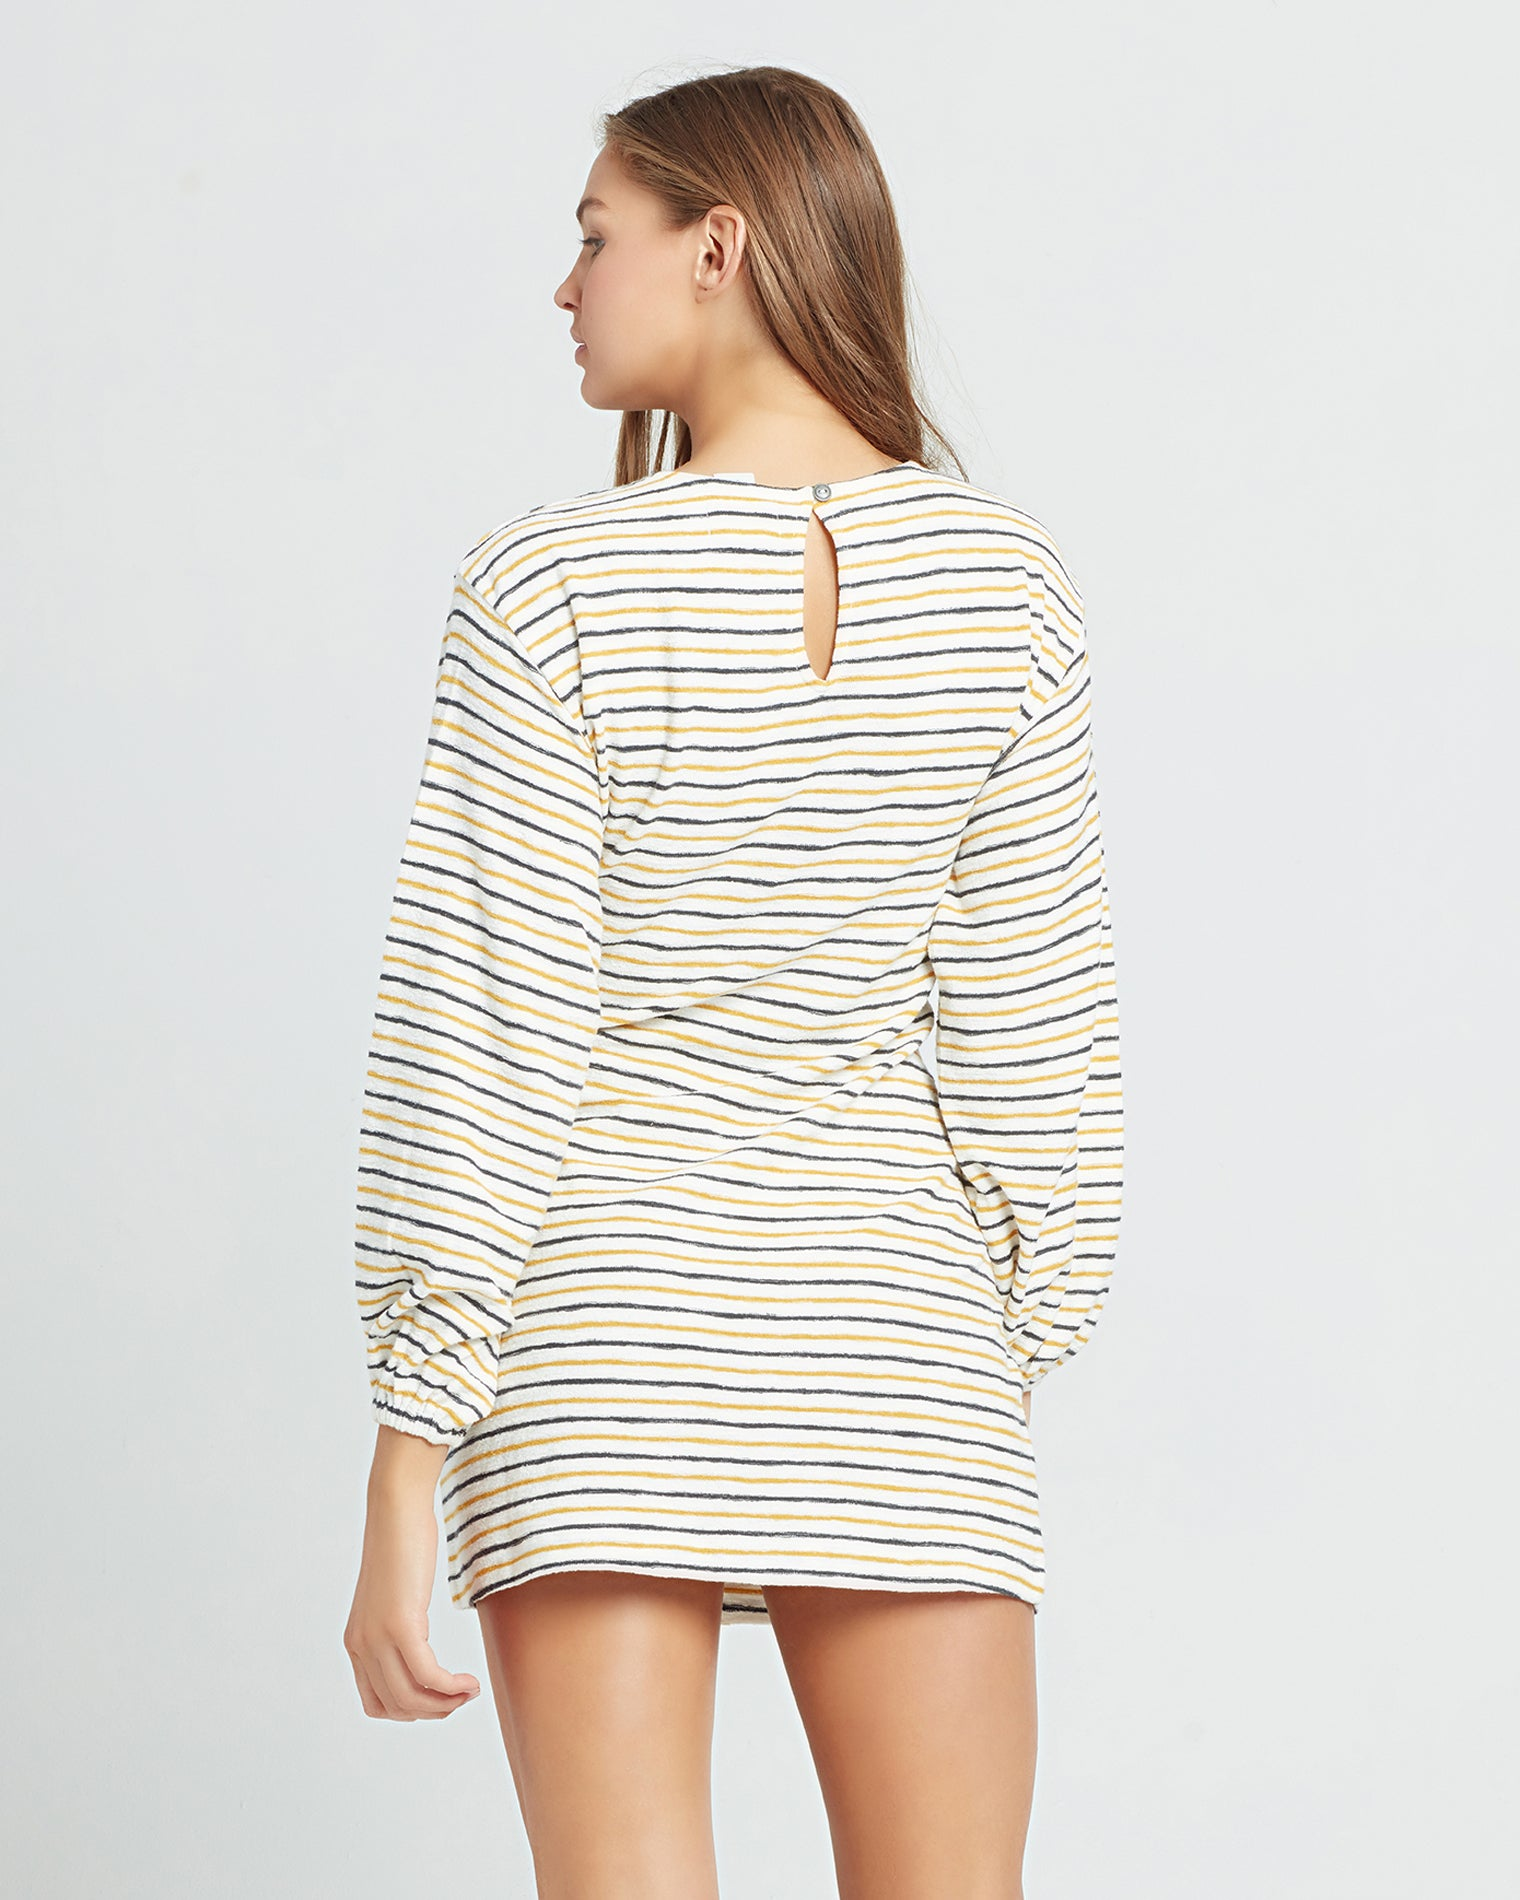 Surf's Up Stripe | Model: Daria  (size: S)